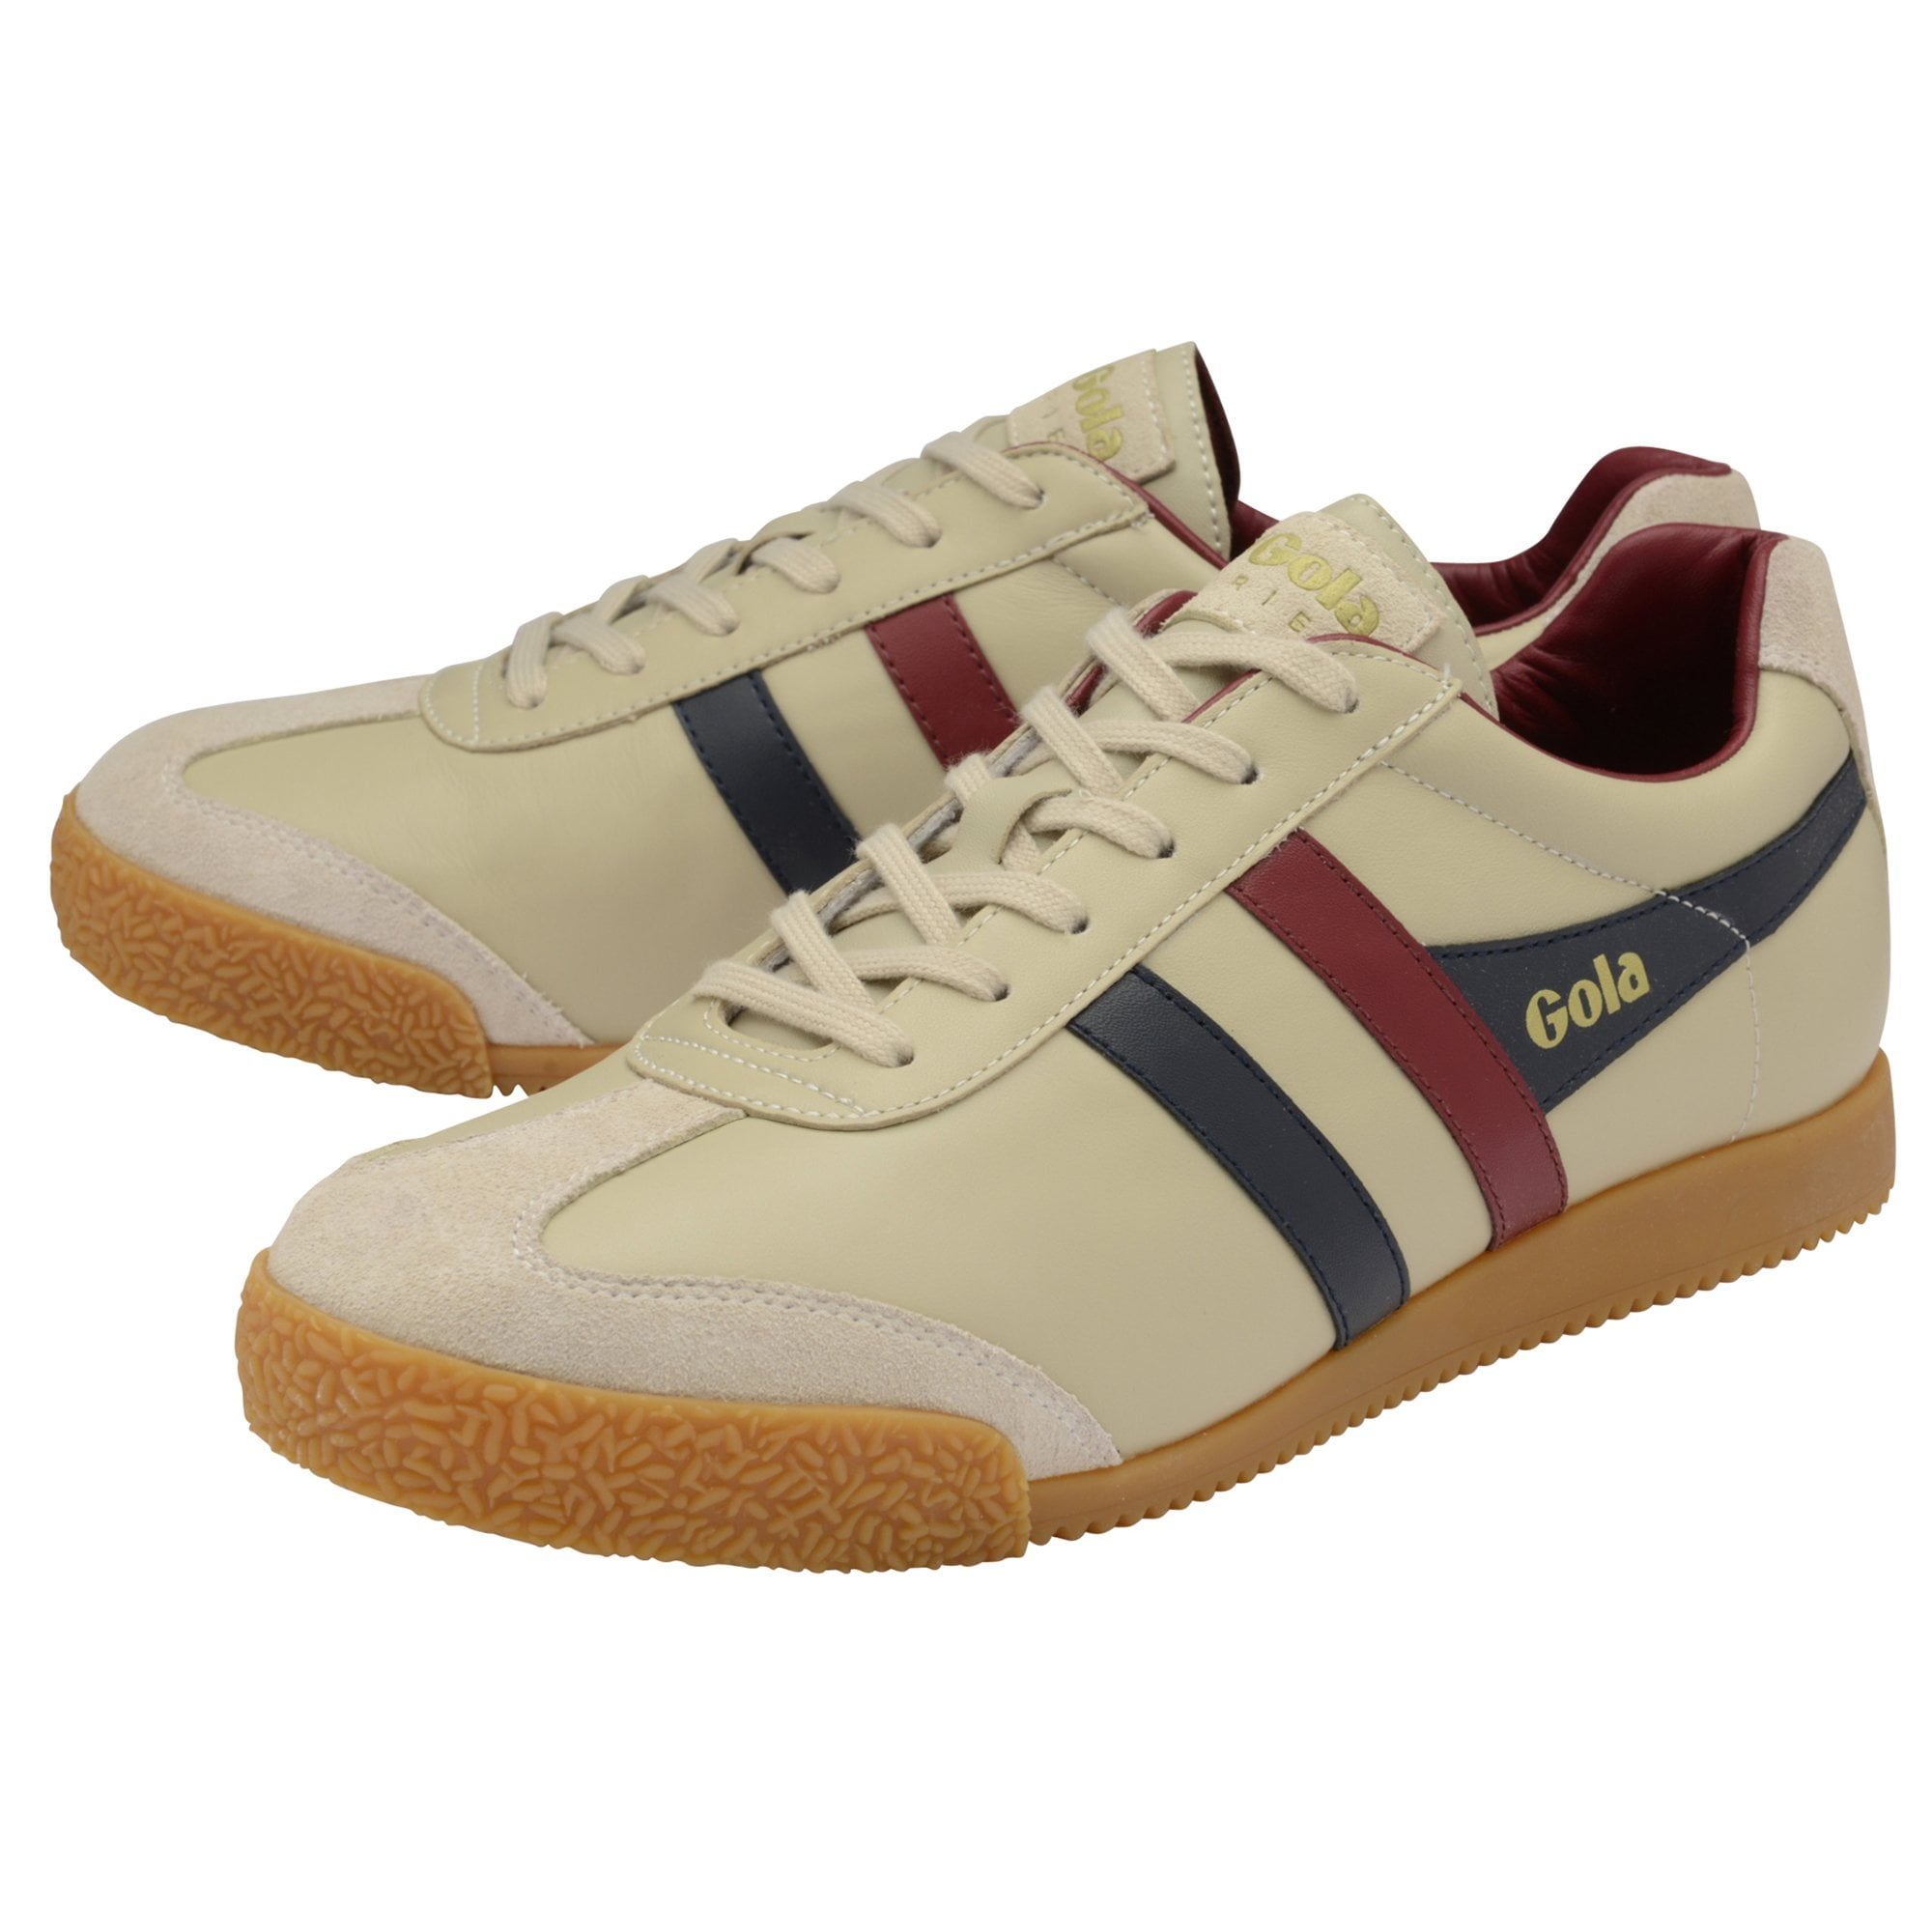 Buy Gola mens Harrier Leather trainers